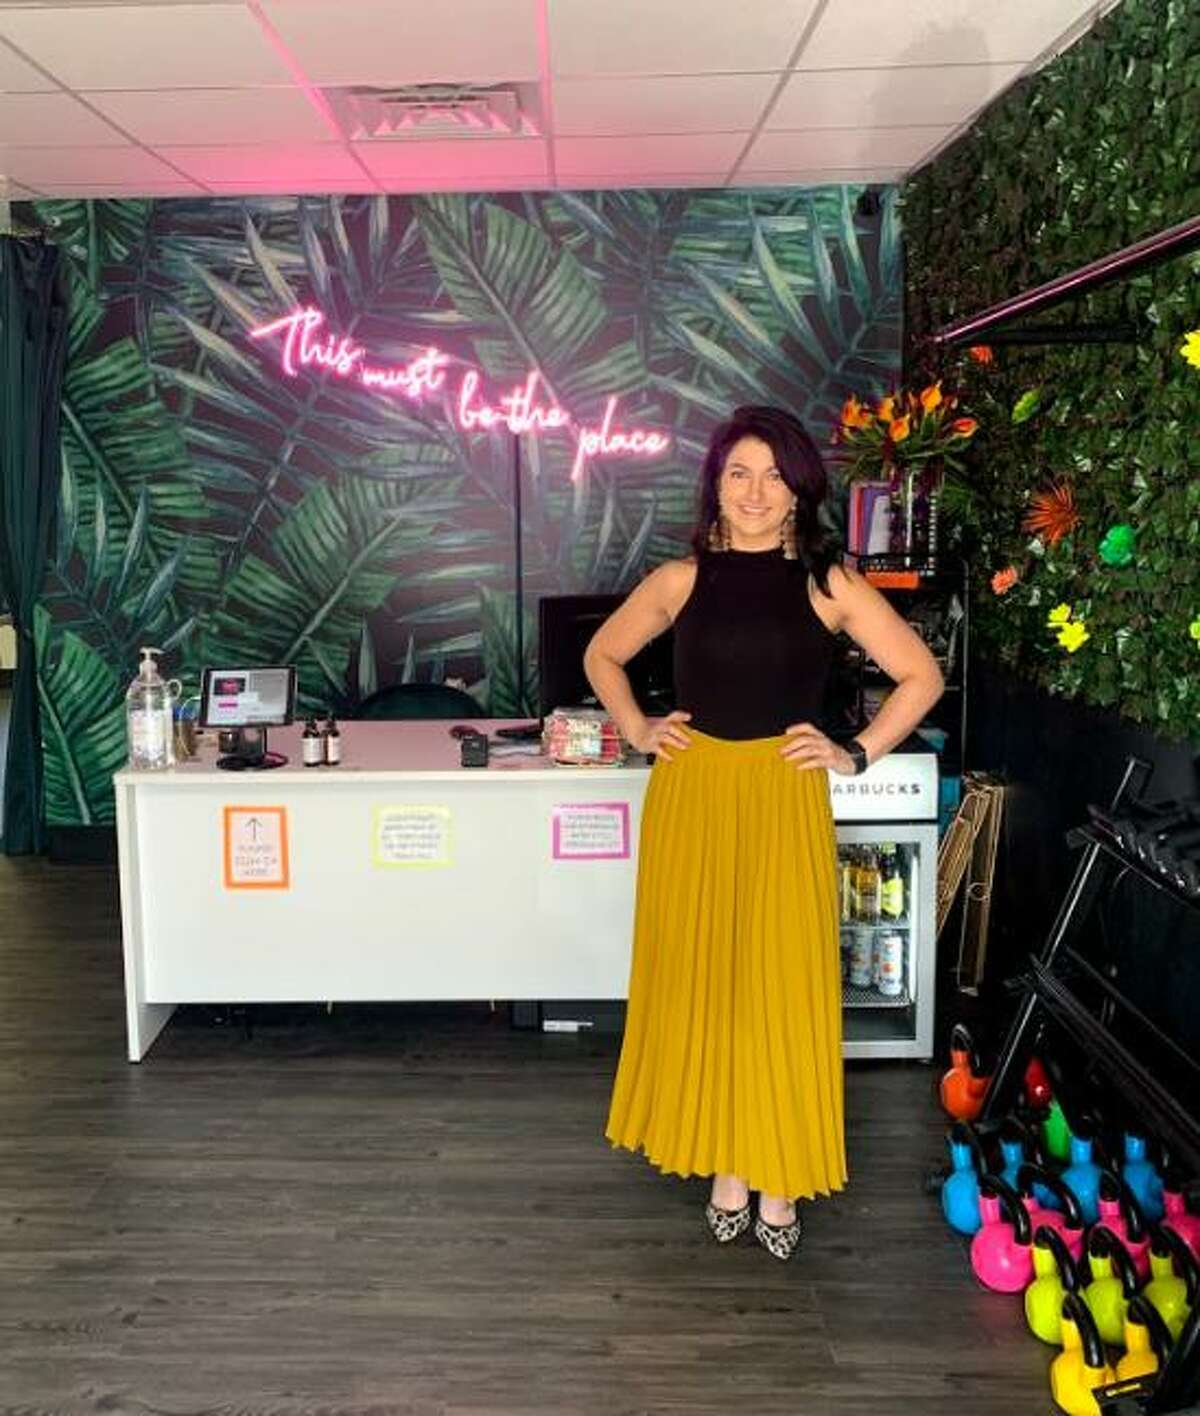 Lifelong Ridgefield resident Samantha Canale has opened a new fitness studio in town that is focused on bringing the fun while clients break a sweat.